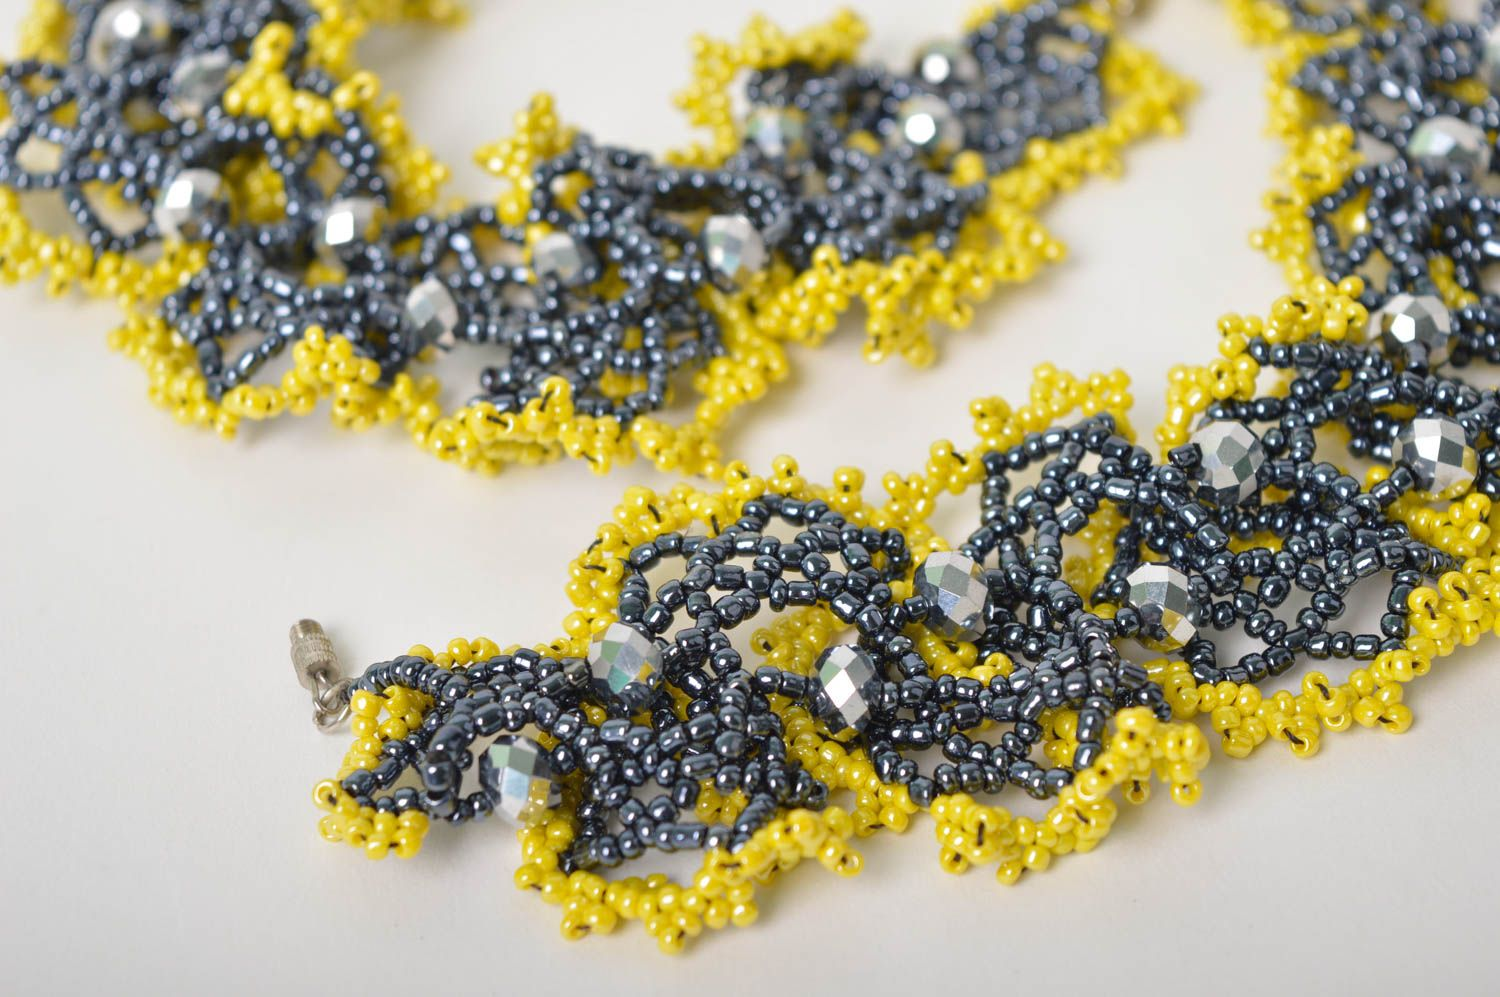 Beautiful handmade beaded necklace artisan jewelry designs fashion accessories photo 4